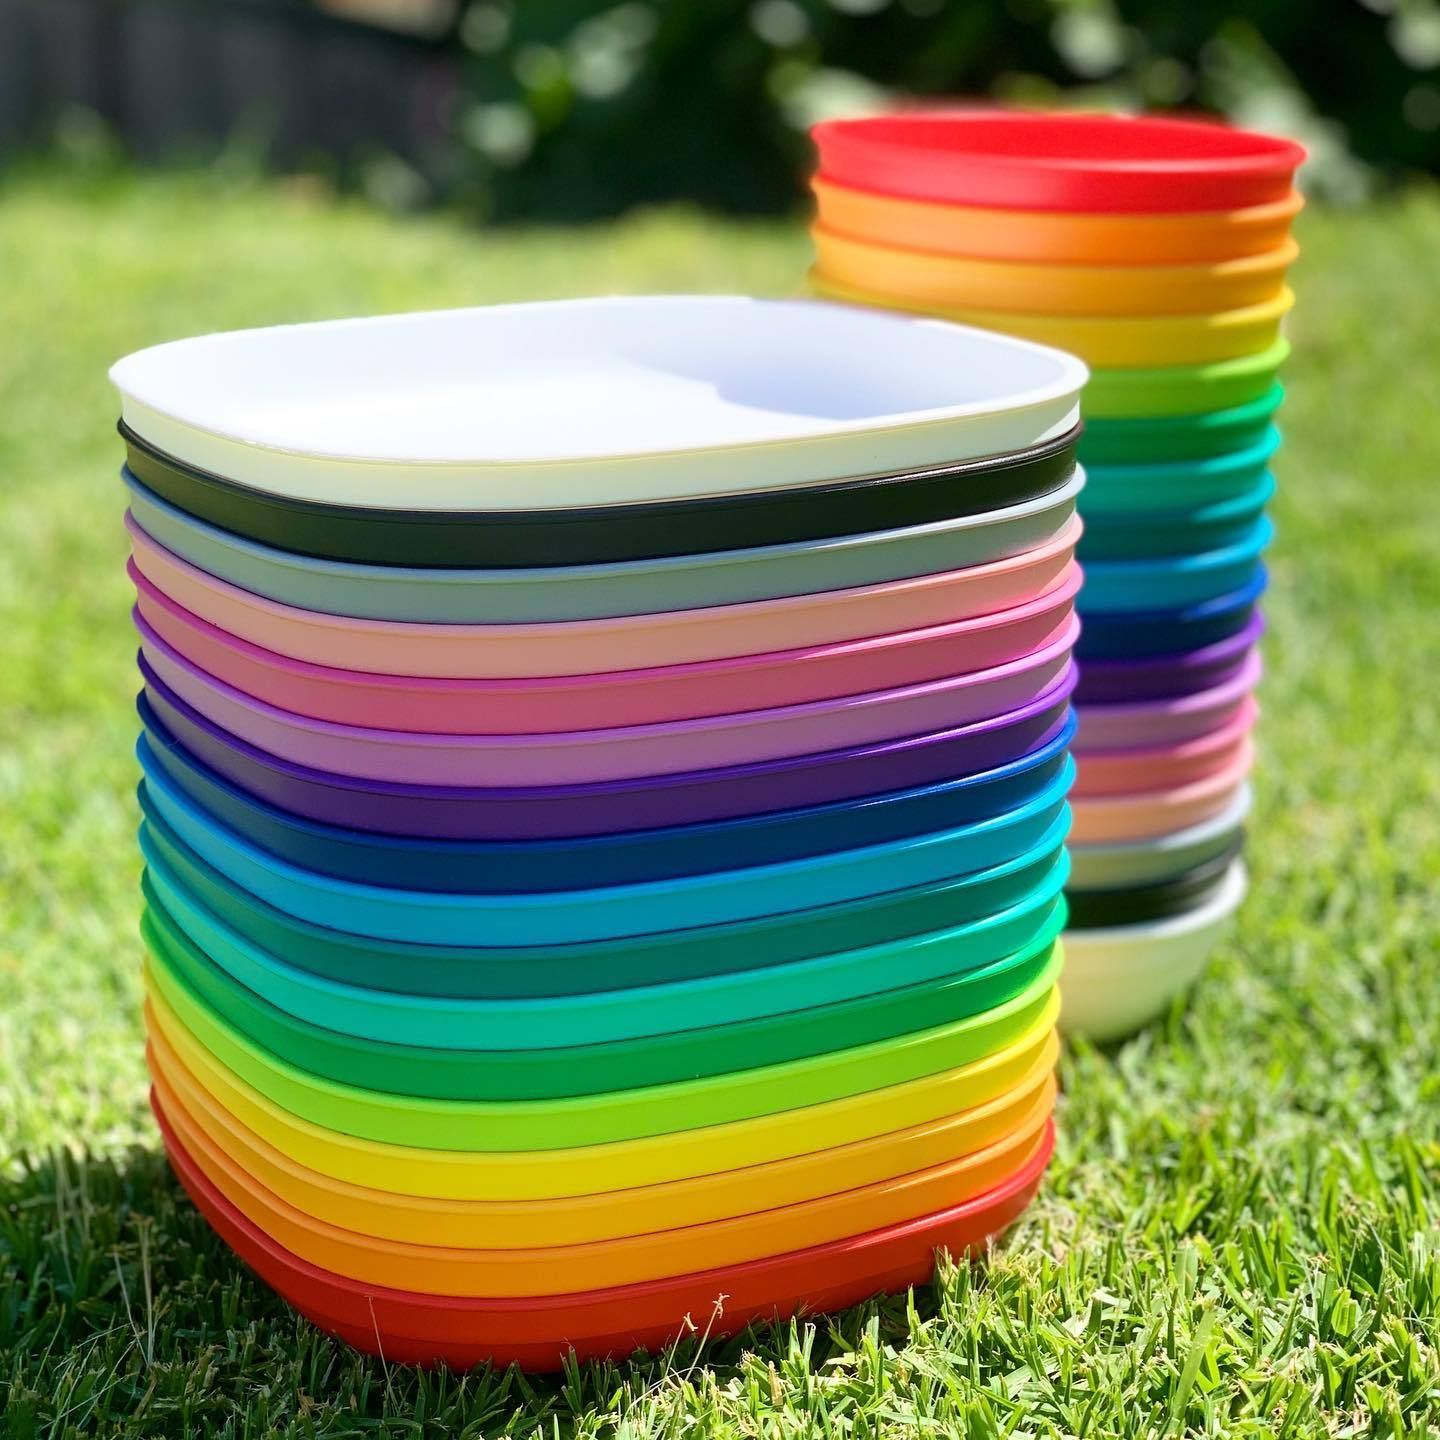 Replay Large Plate Replay Dinnerware at Little Earth Nest Eco Shop